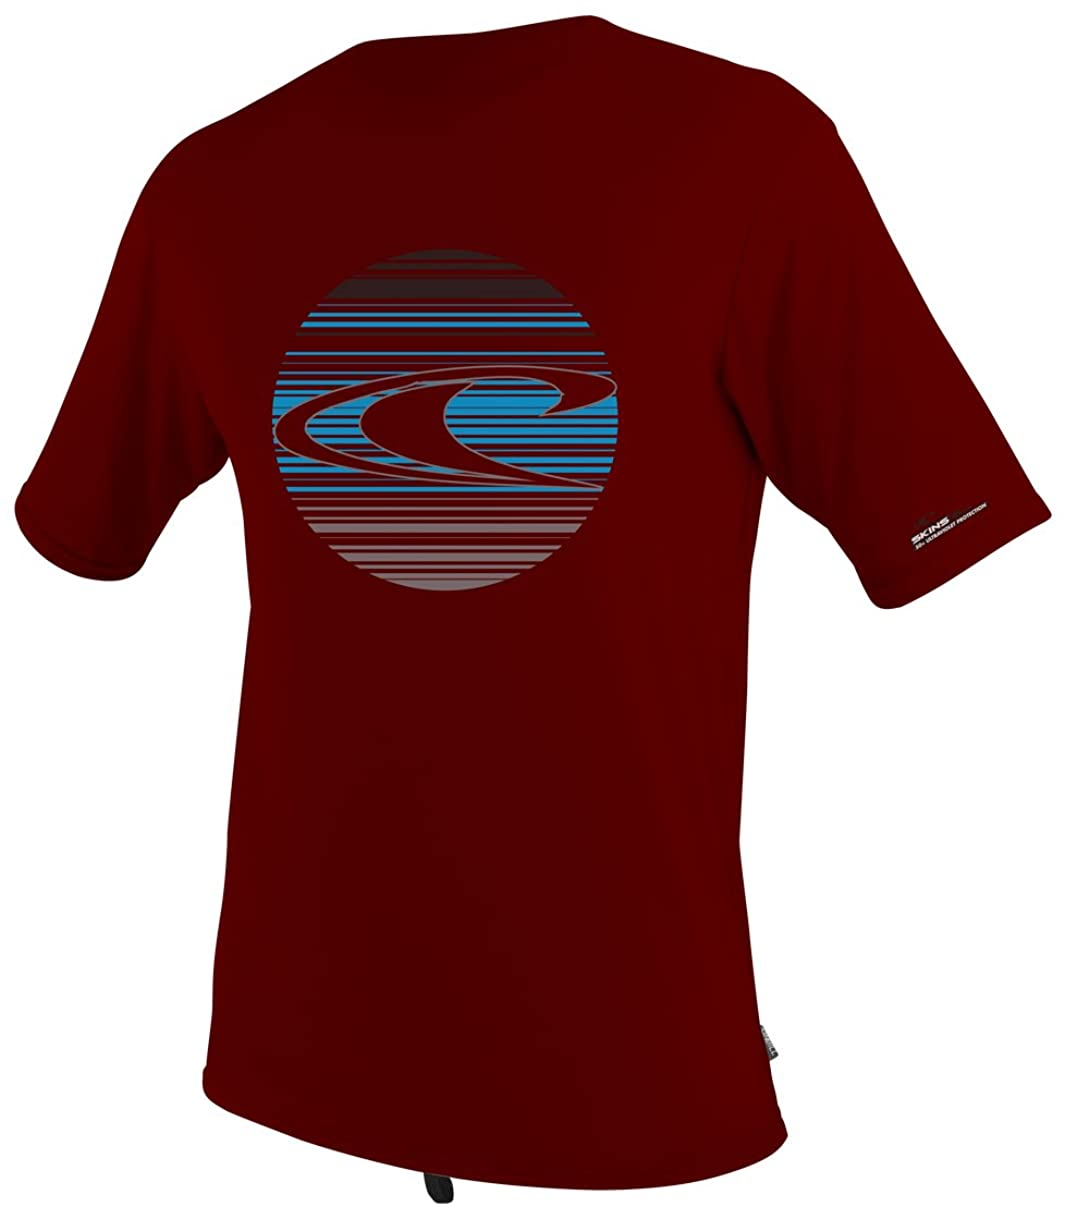 O'Neill Wetsuits UV Sun Protection Youth's Skins Short Sleeve Surf Tee